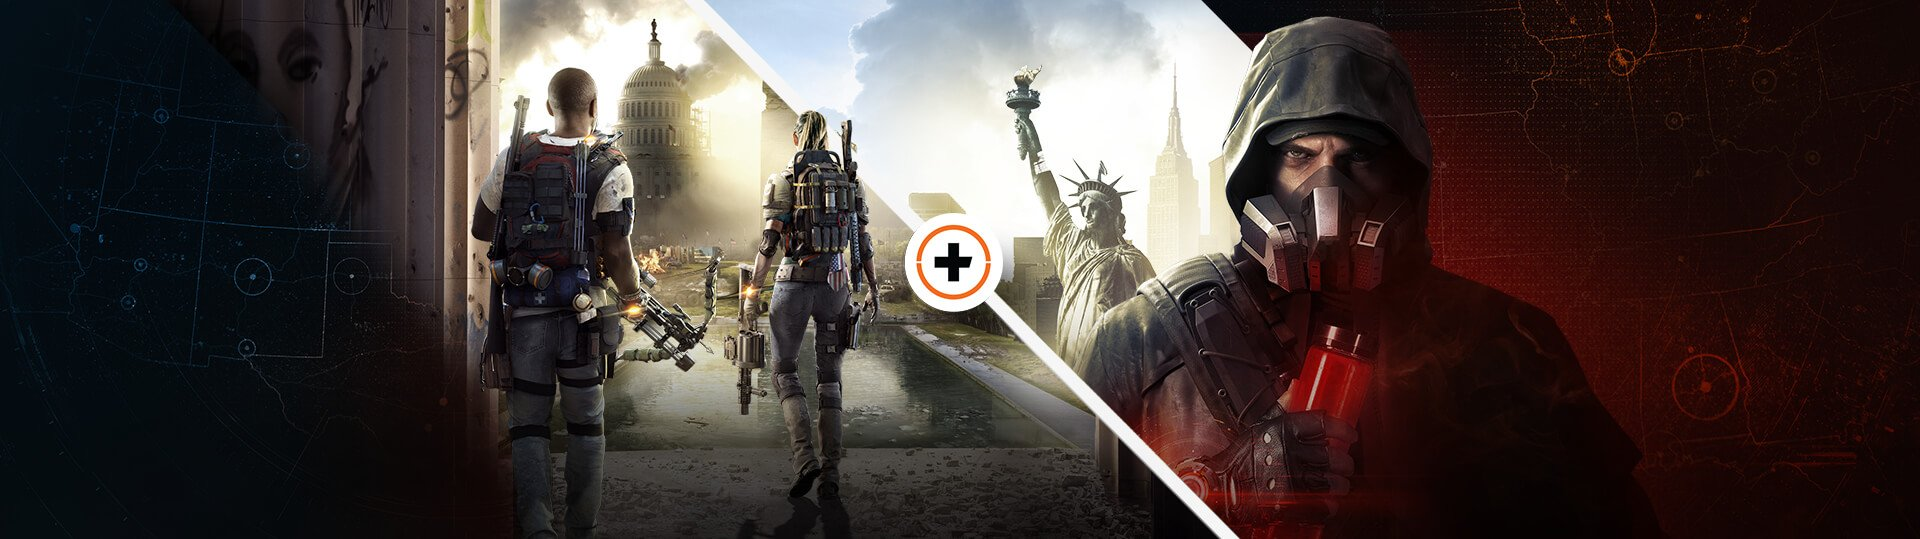 The Division 2 Warlords of New York Ultimate Edition - UBISOFT Store - Download The Division 2 Warlords of New York Ultimate Edition - UBISOFT Store for FREE - Free Cheats for Games